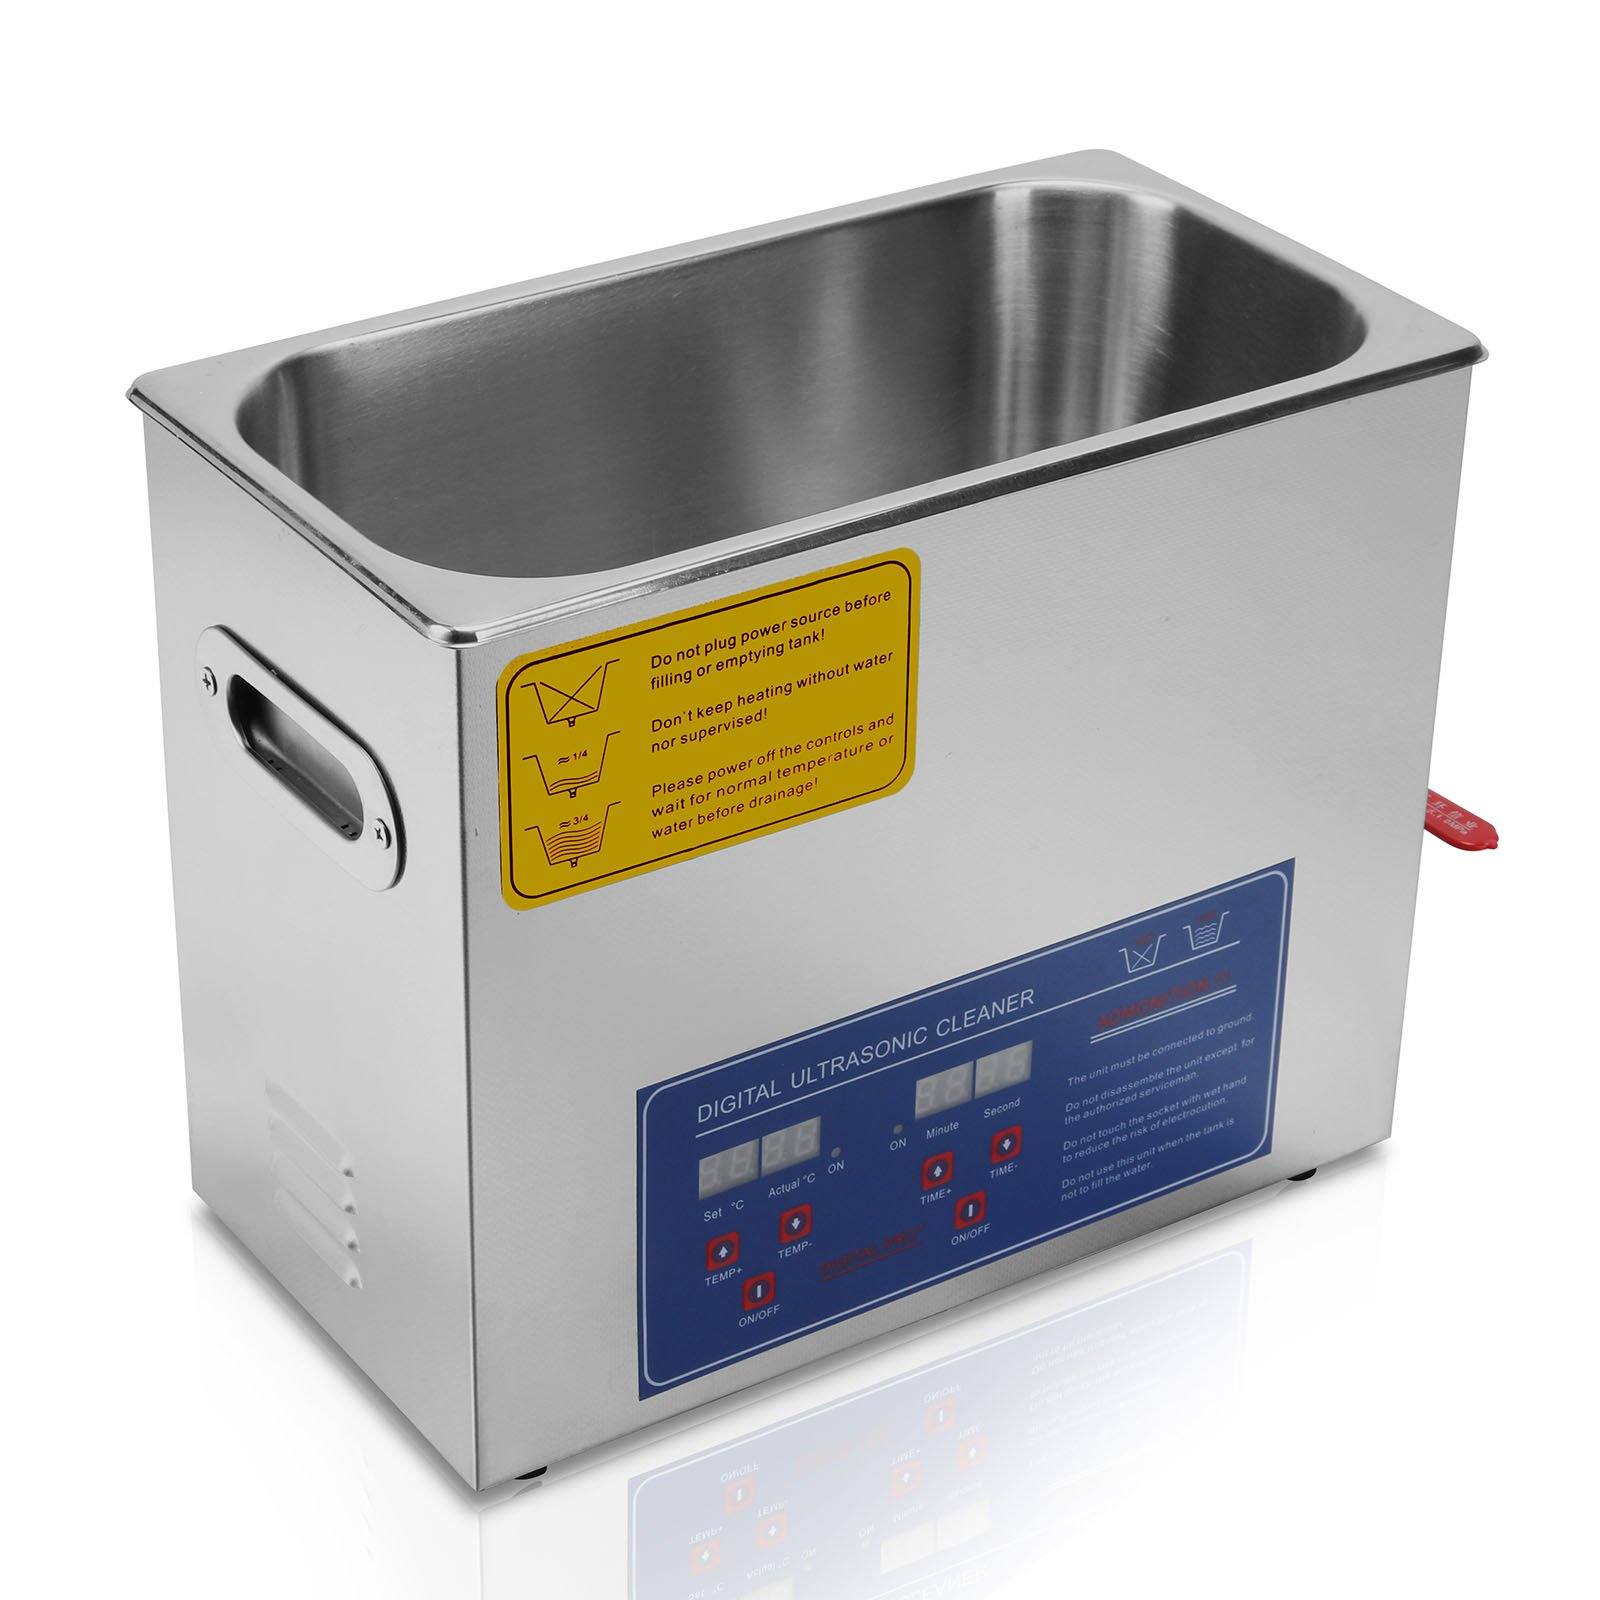 OrangeA Ultrasonic Cleaner Ultrasonic Cleaner Solution Heated Ultrasonic Cleaner 6L for Jewelry Watch Cleaning Industry Heated Heater with Drainage System (6 Liter) by OrangeA (Image #5)